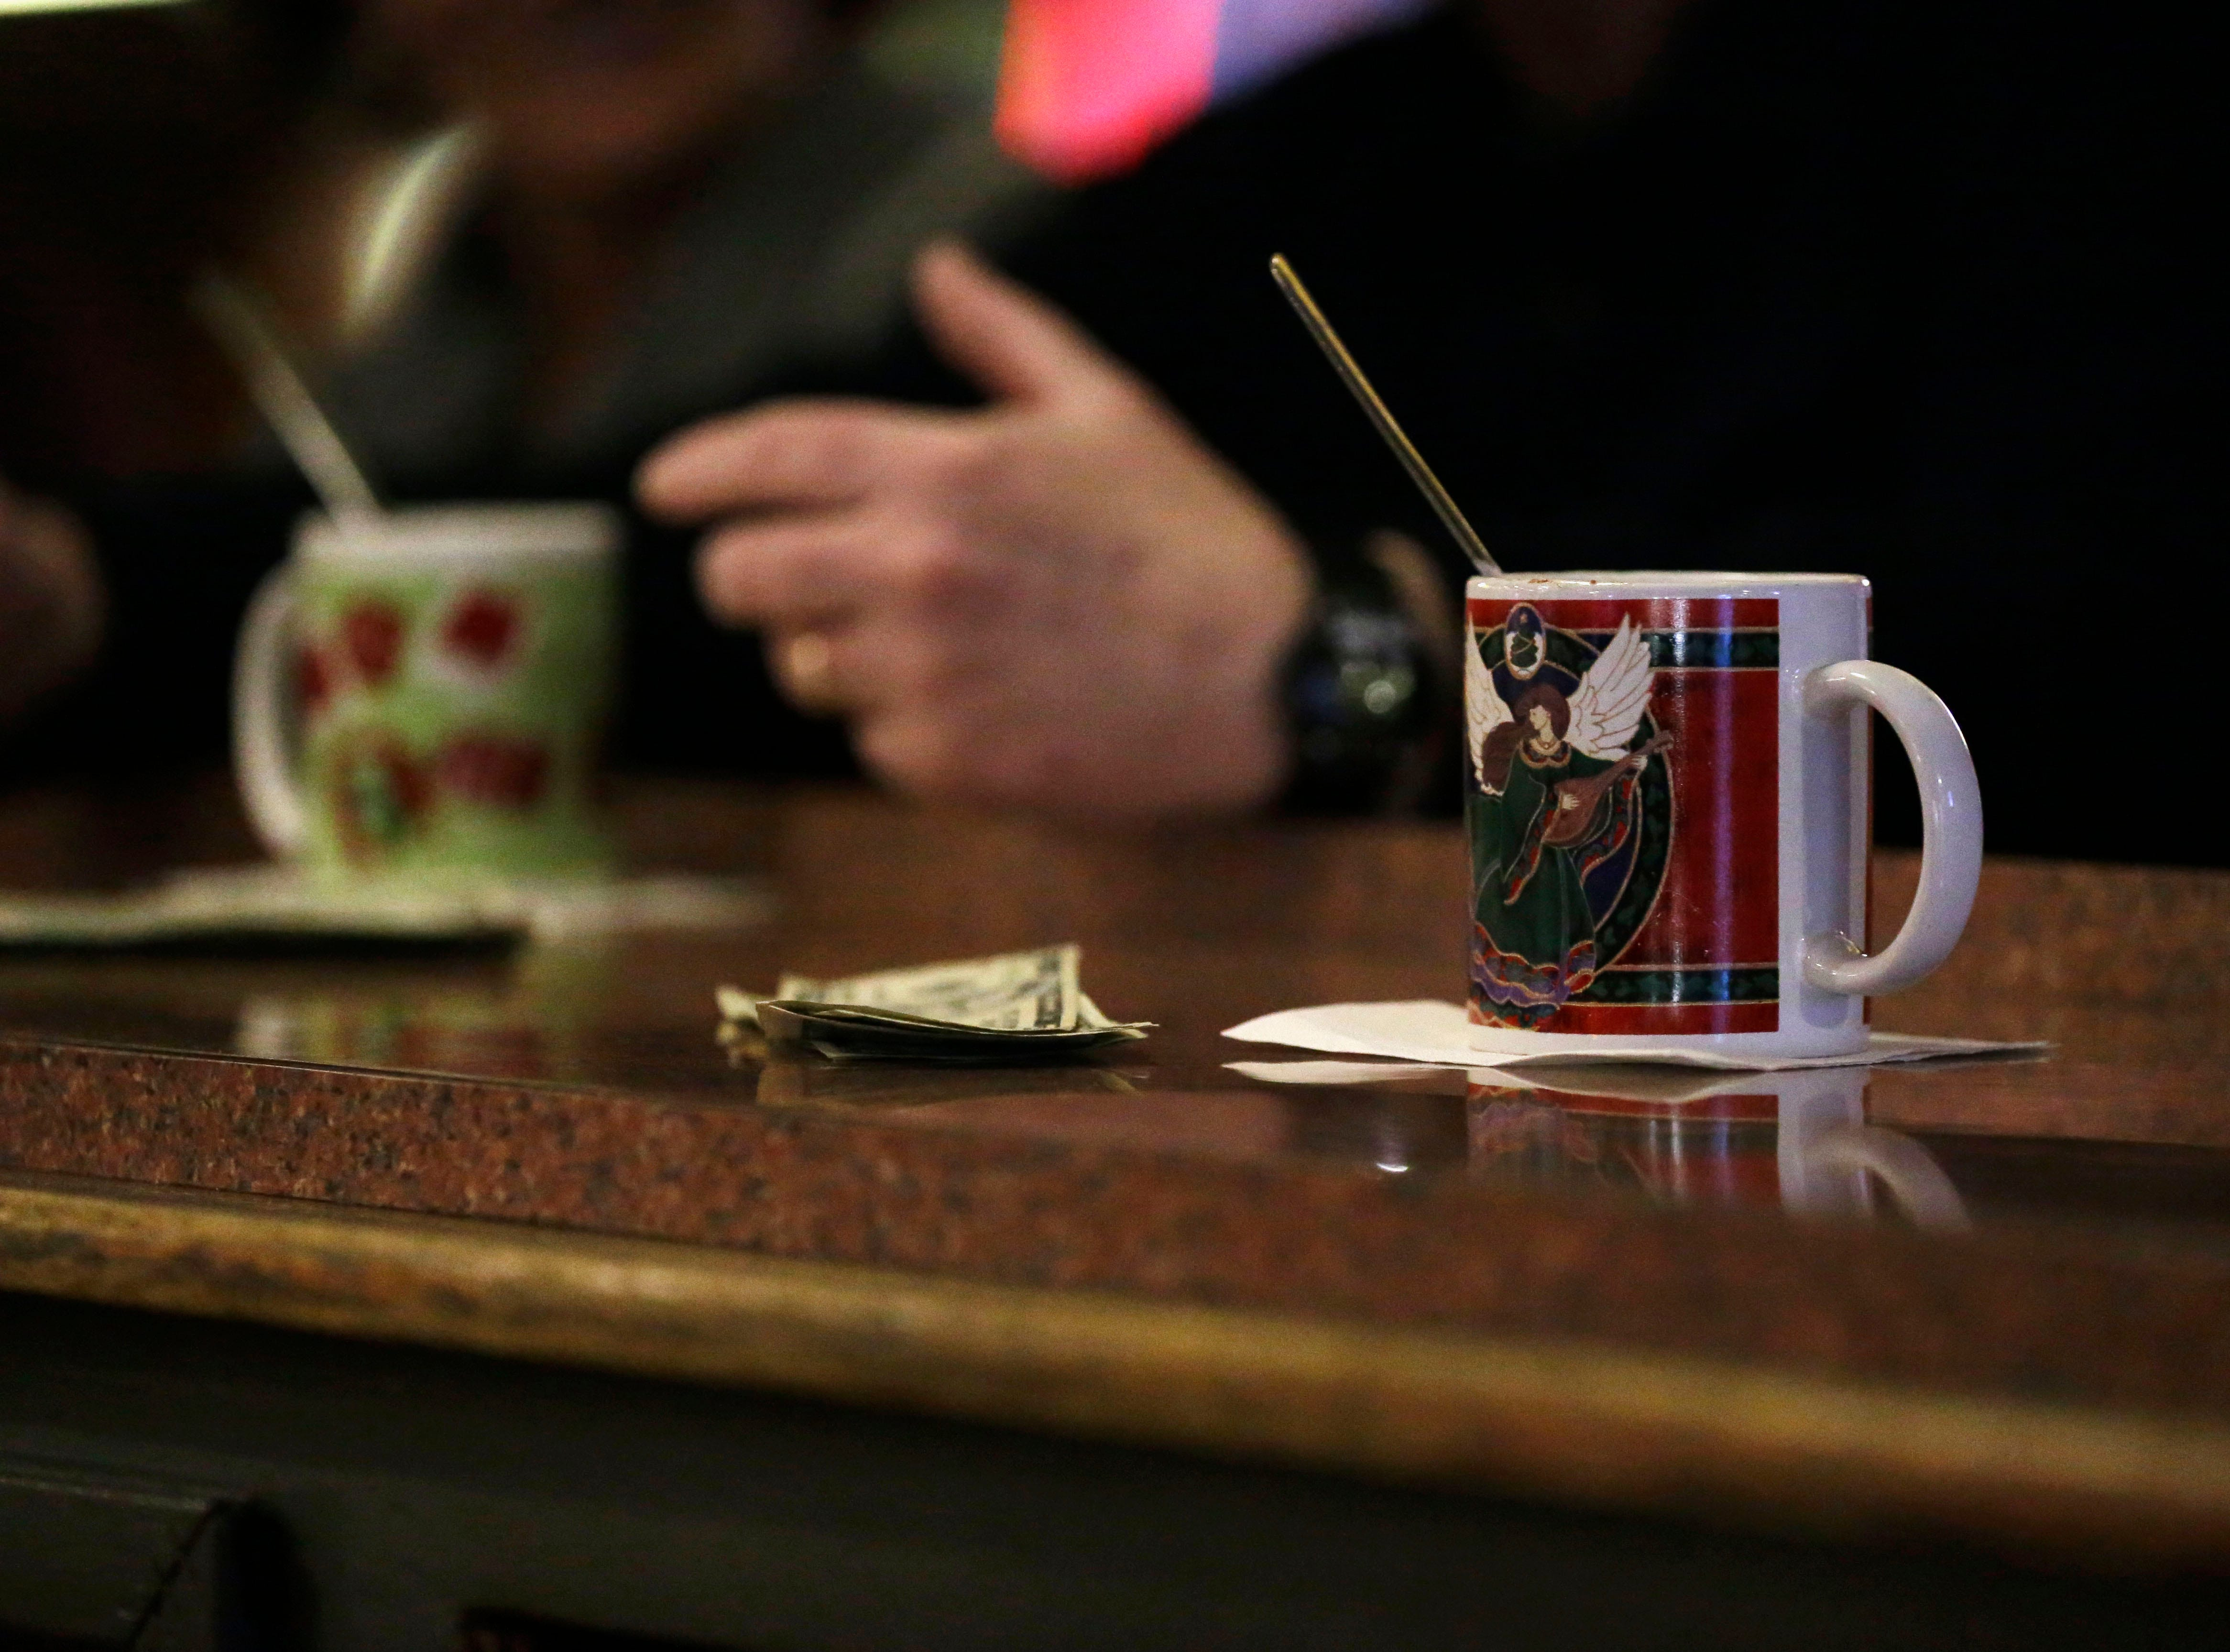 Patrons enjoy Tom and Jerrys on Friday, December 7, 2018, at The Domino Bar in Wausau, Wis. The Domino serves the popular drink every year, from Thanksgiving until New Year's Day. Tork Mason/USA Today NETWORK-Wisconsin